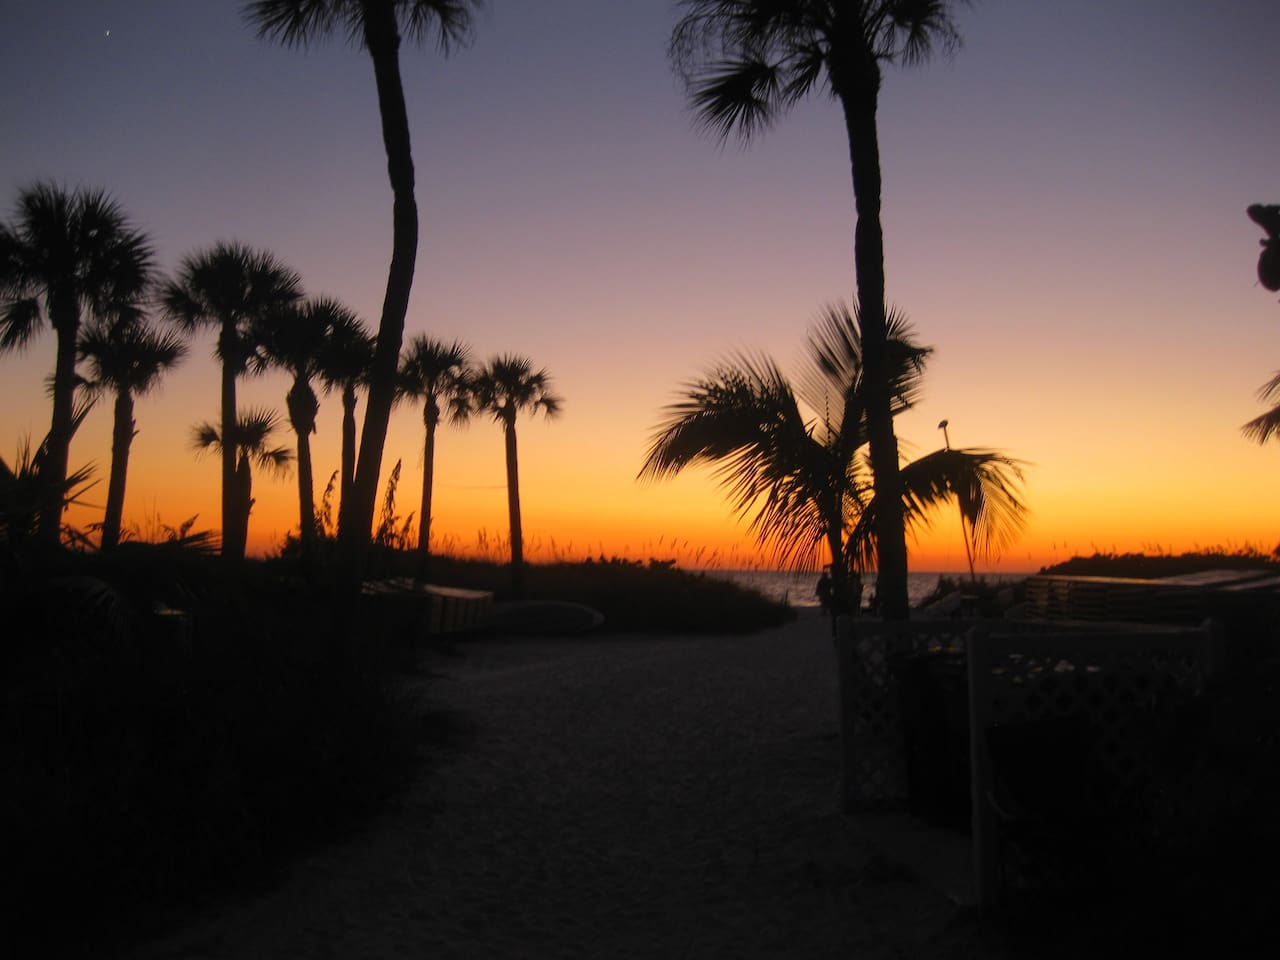 Walking to our beach to admire the sunset!